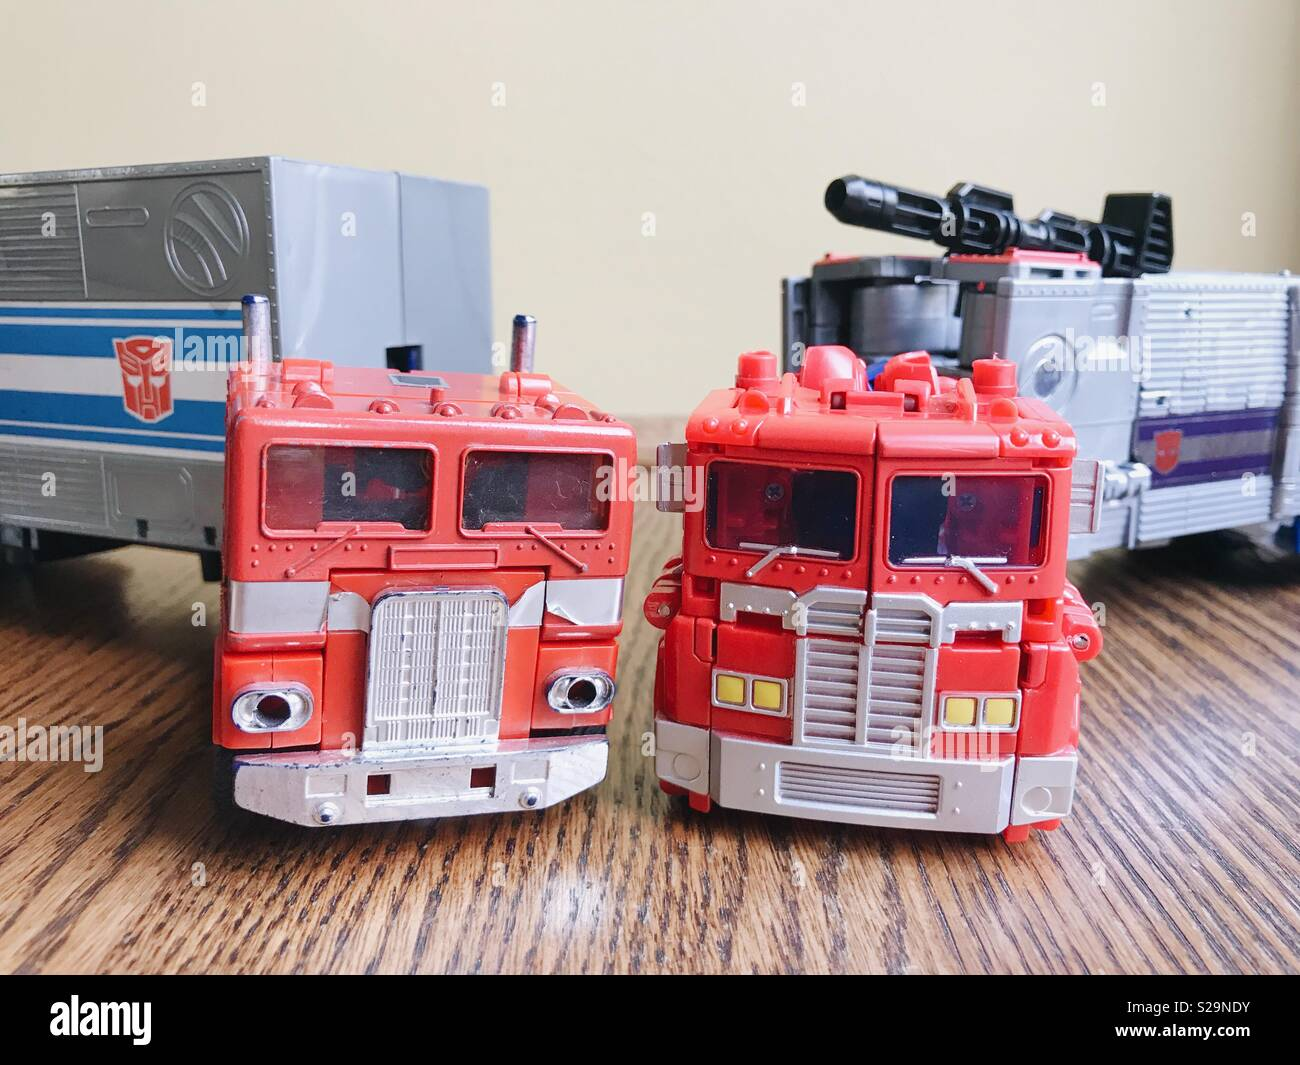 Comparison between Transformers toys old and new: original vintage Optimus Prime (left) and new Optimus Prime from 2018 (right). Stock Photo